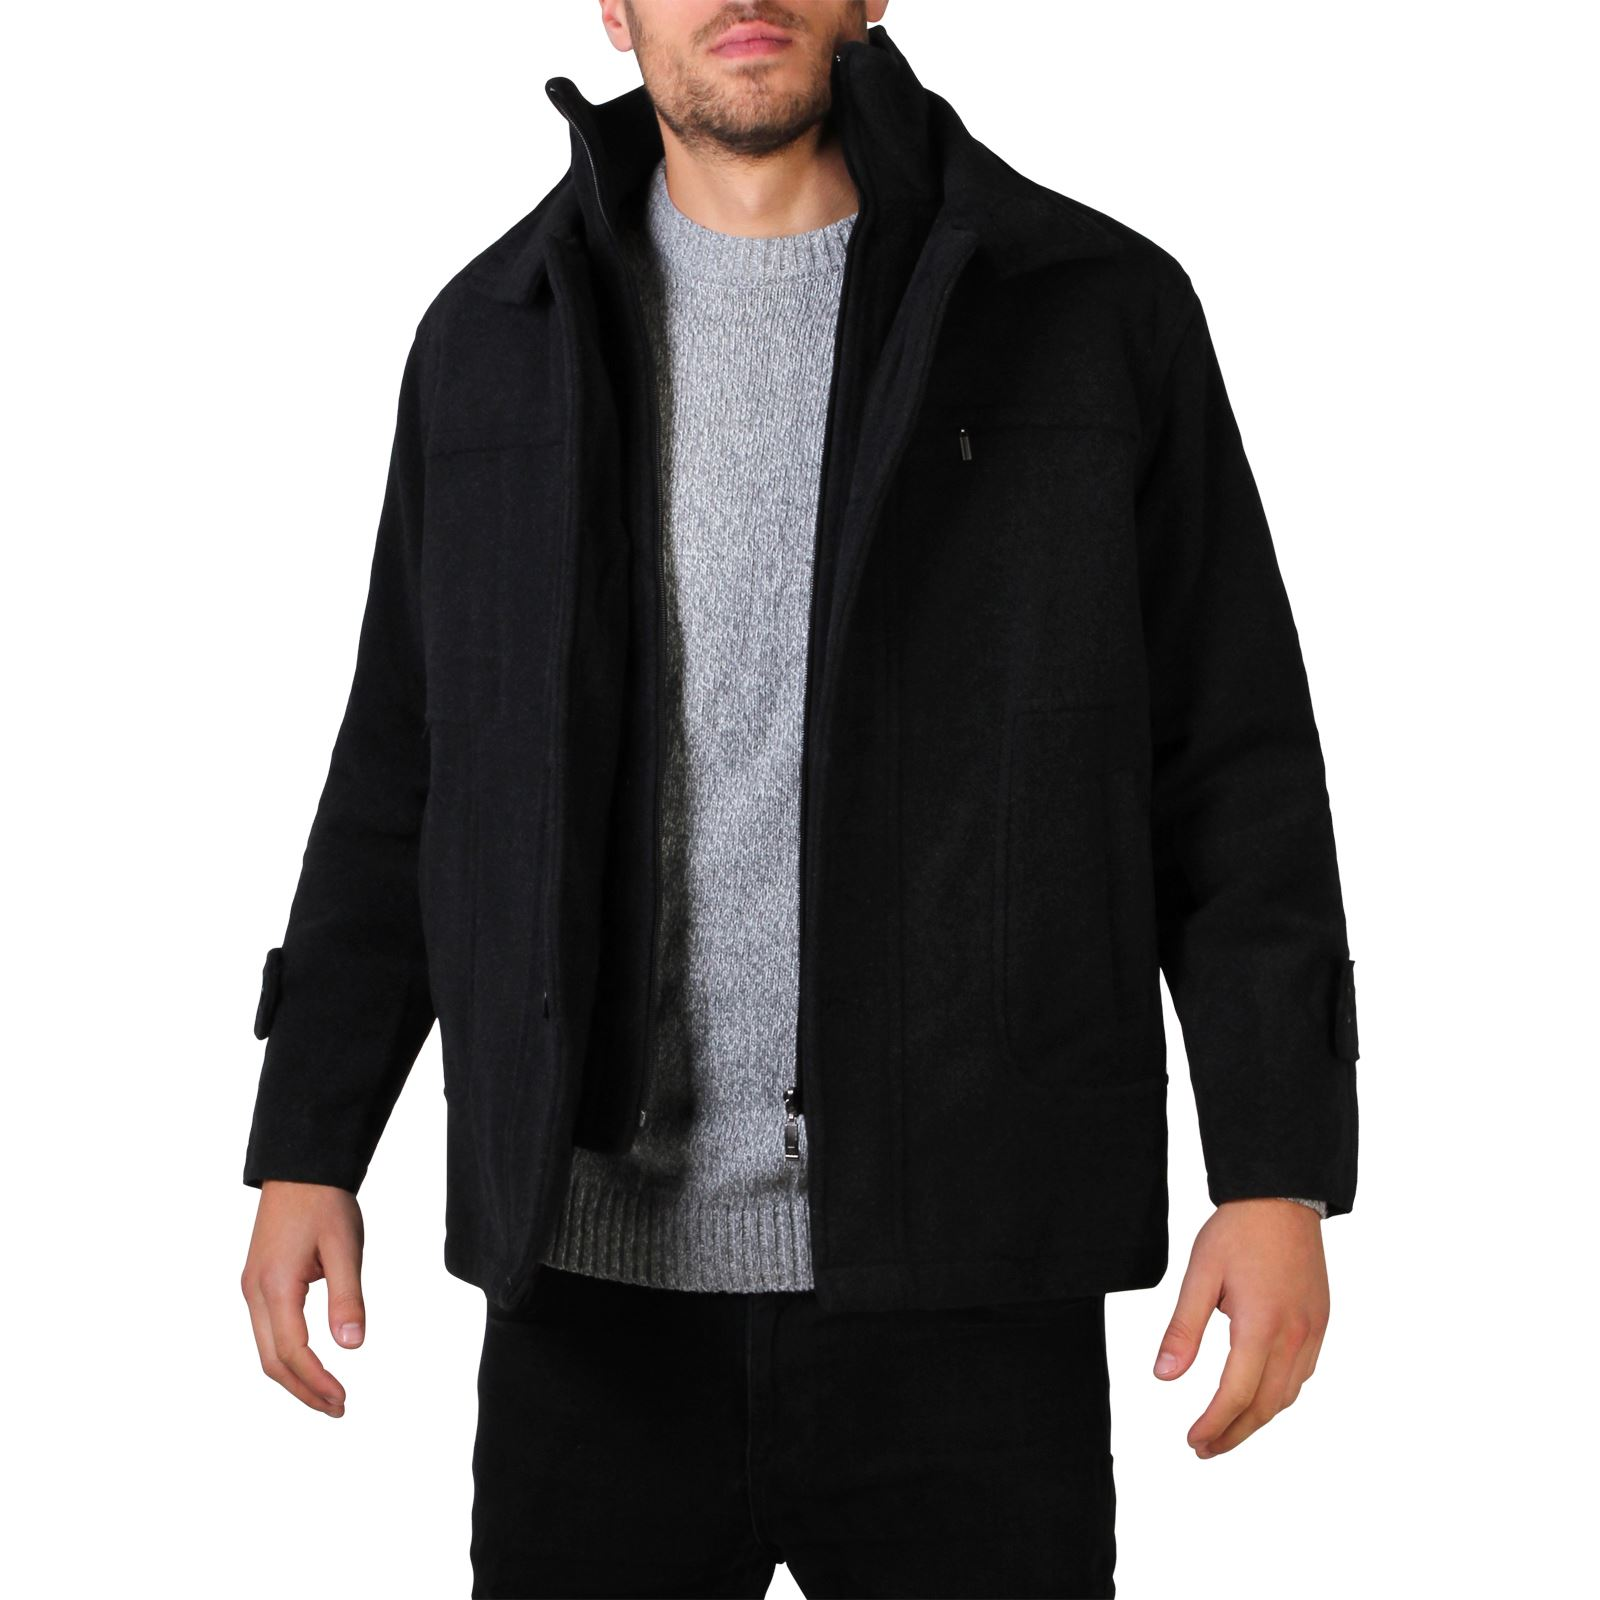 Shop for men's smart jackets at litastmaterlo.gq Next day delivery and free returns available. s of products online. Browse formal jackets now!